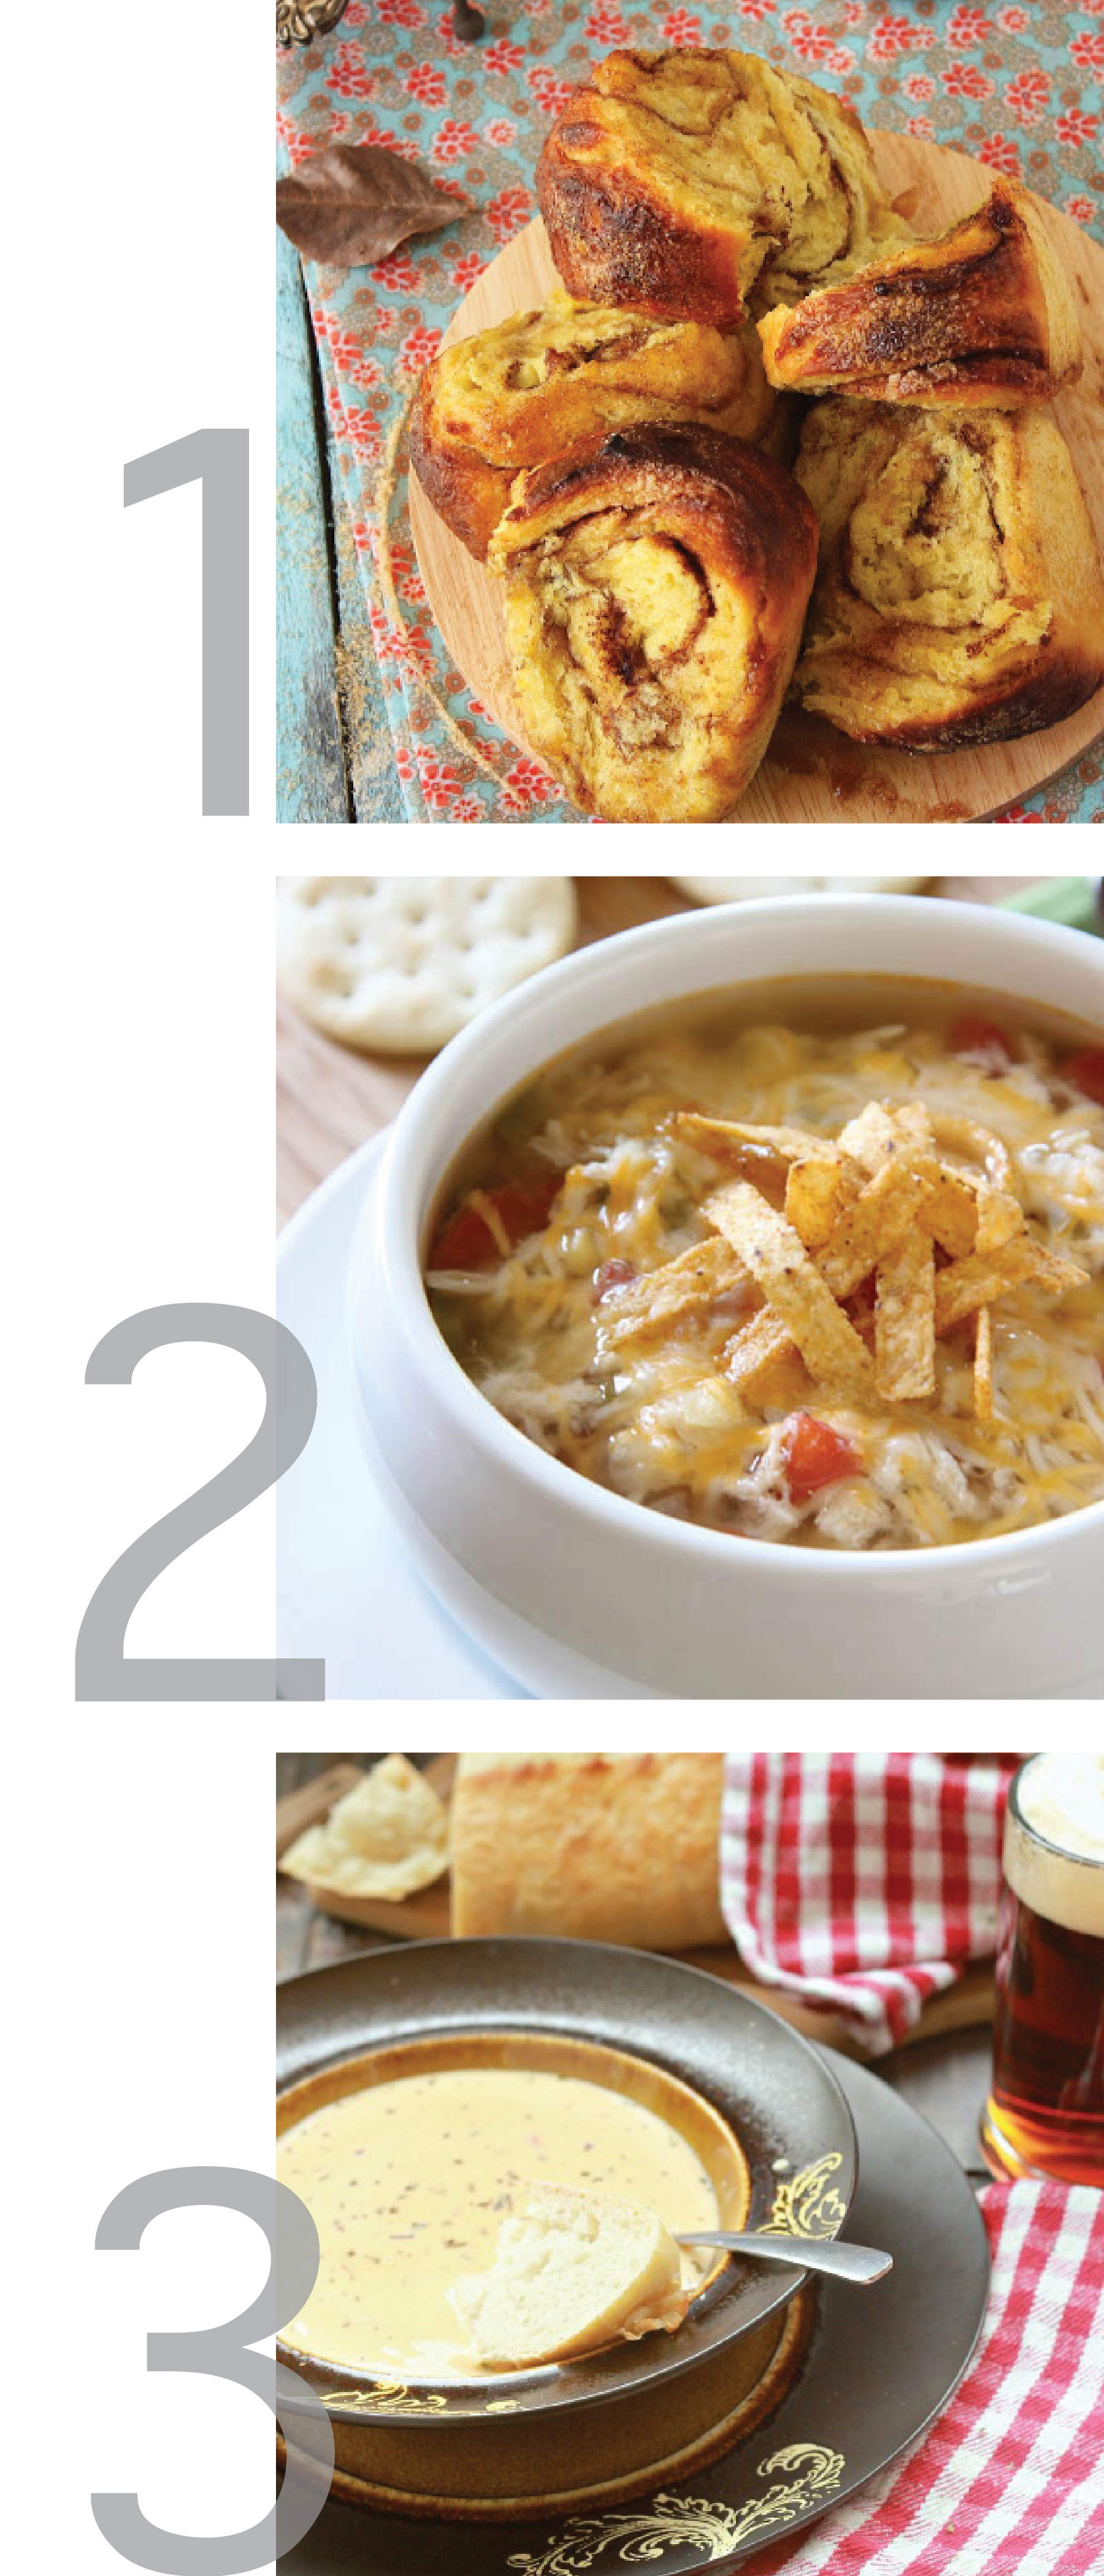 this photo is a clean simple graphic combining images of three recipes: chicken tortilla soup, sweet potato brown sugar cinnamon rolls, and cheddar ale soup